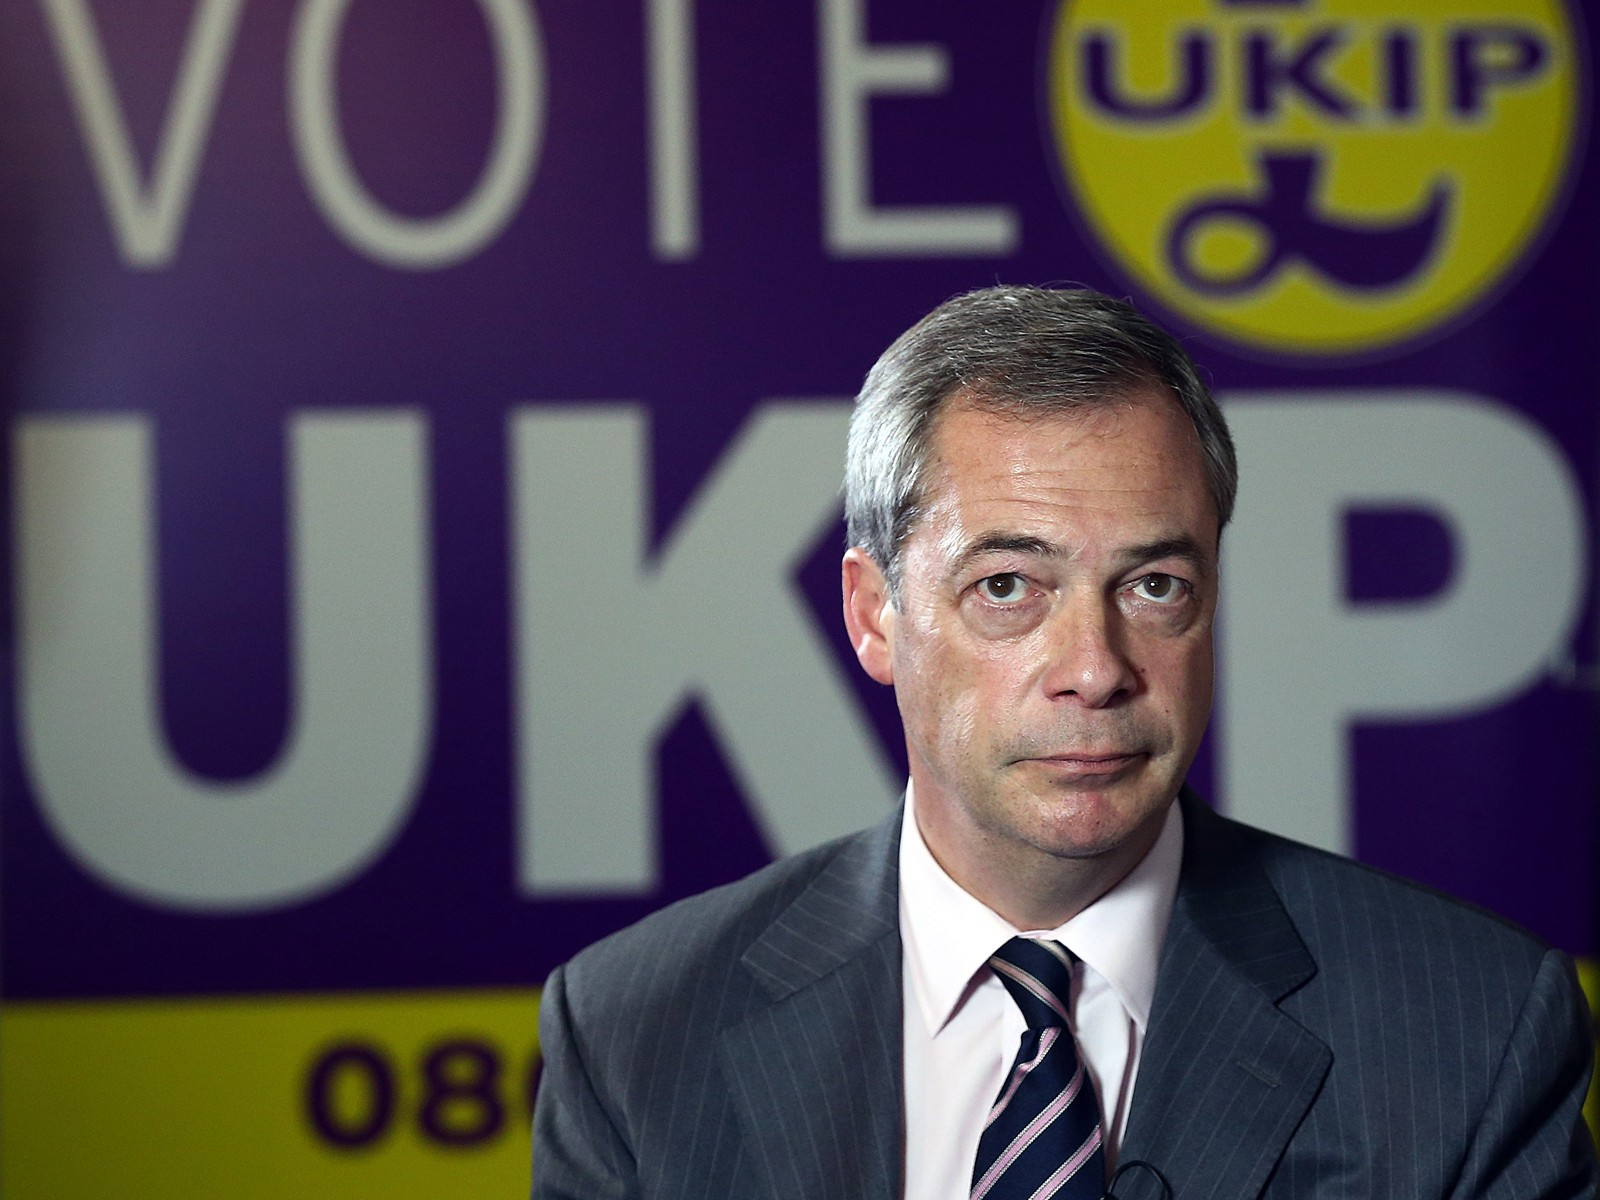 A fourth reich is rising across europe with ties to donald trump nigel farage leader of ukip avowed non racist uses the word nigger met secretly with racist bnp partners with neo nazi parties in europe buycottarizona